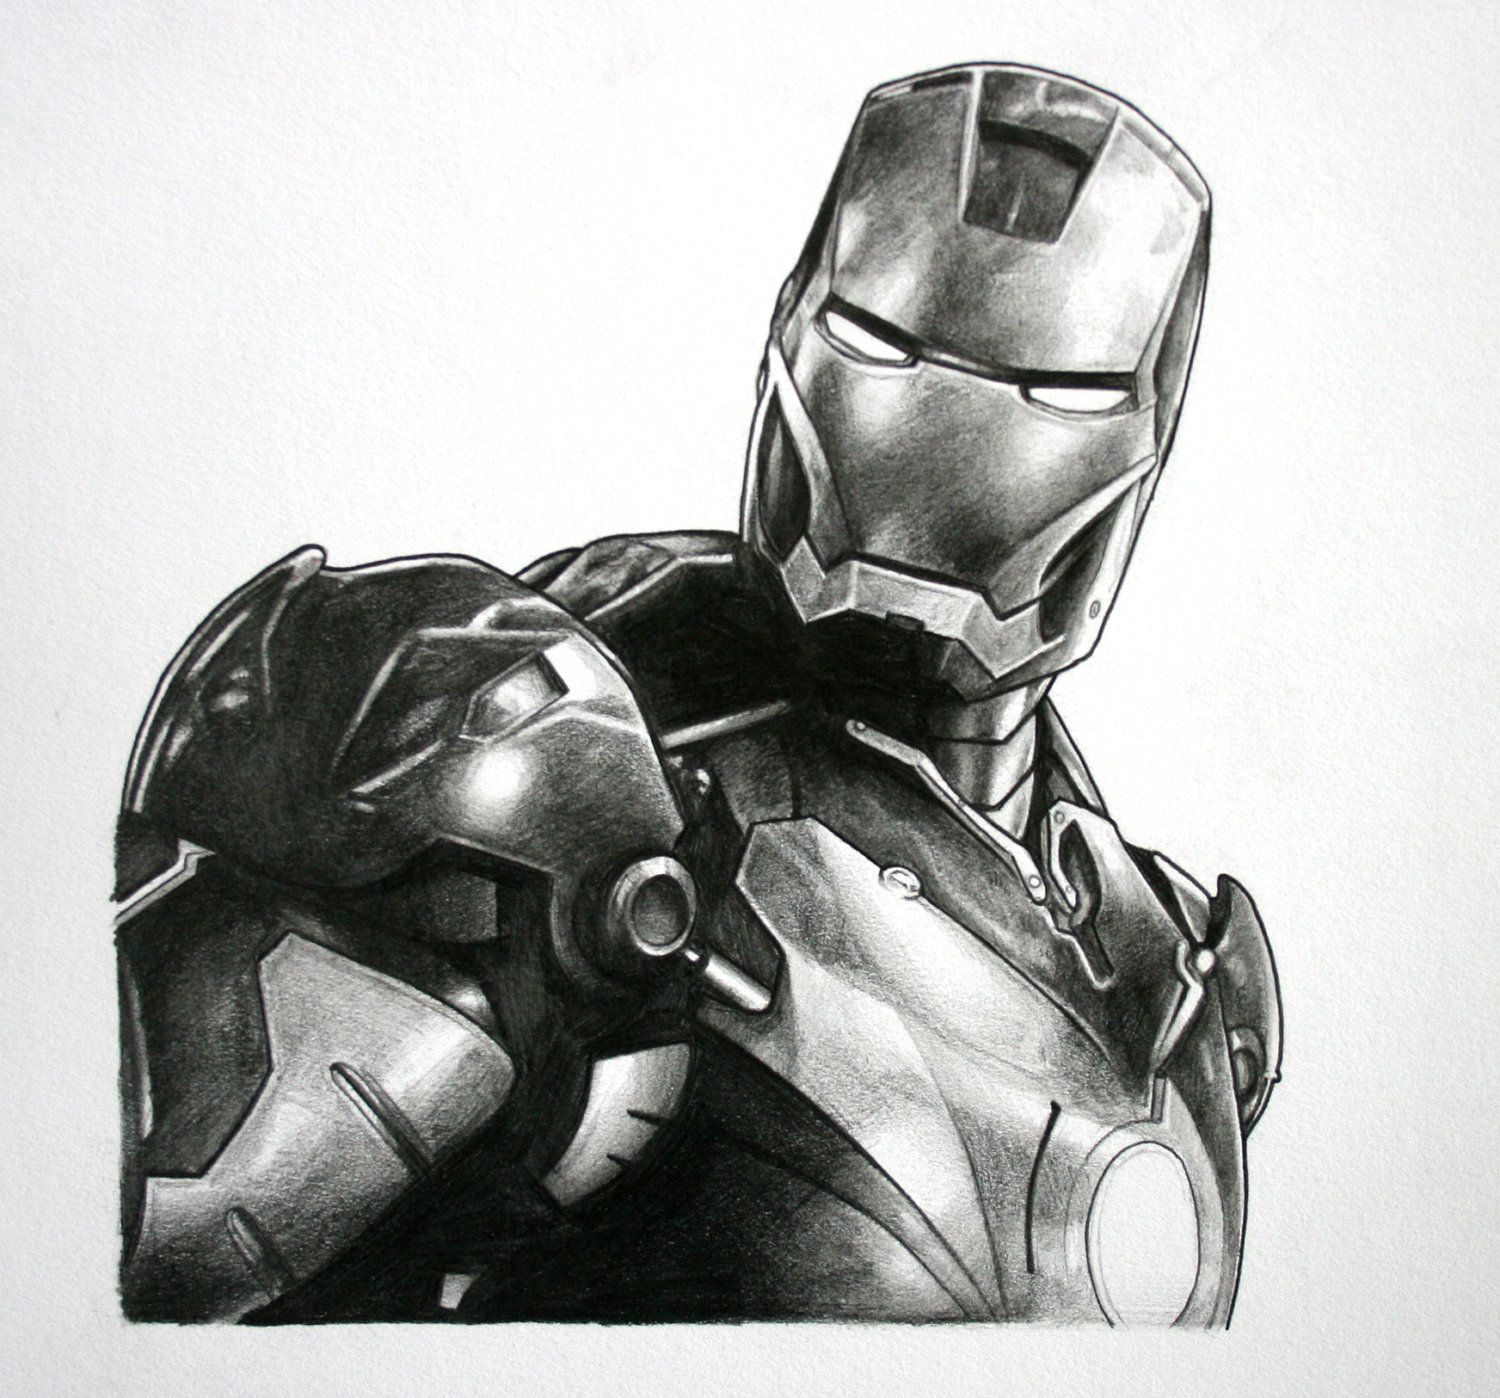 Iron man avengers original pencil drawing